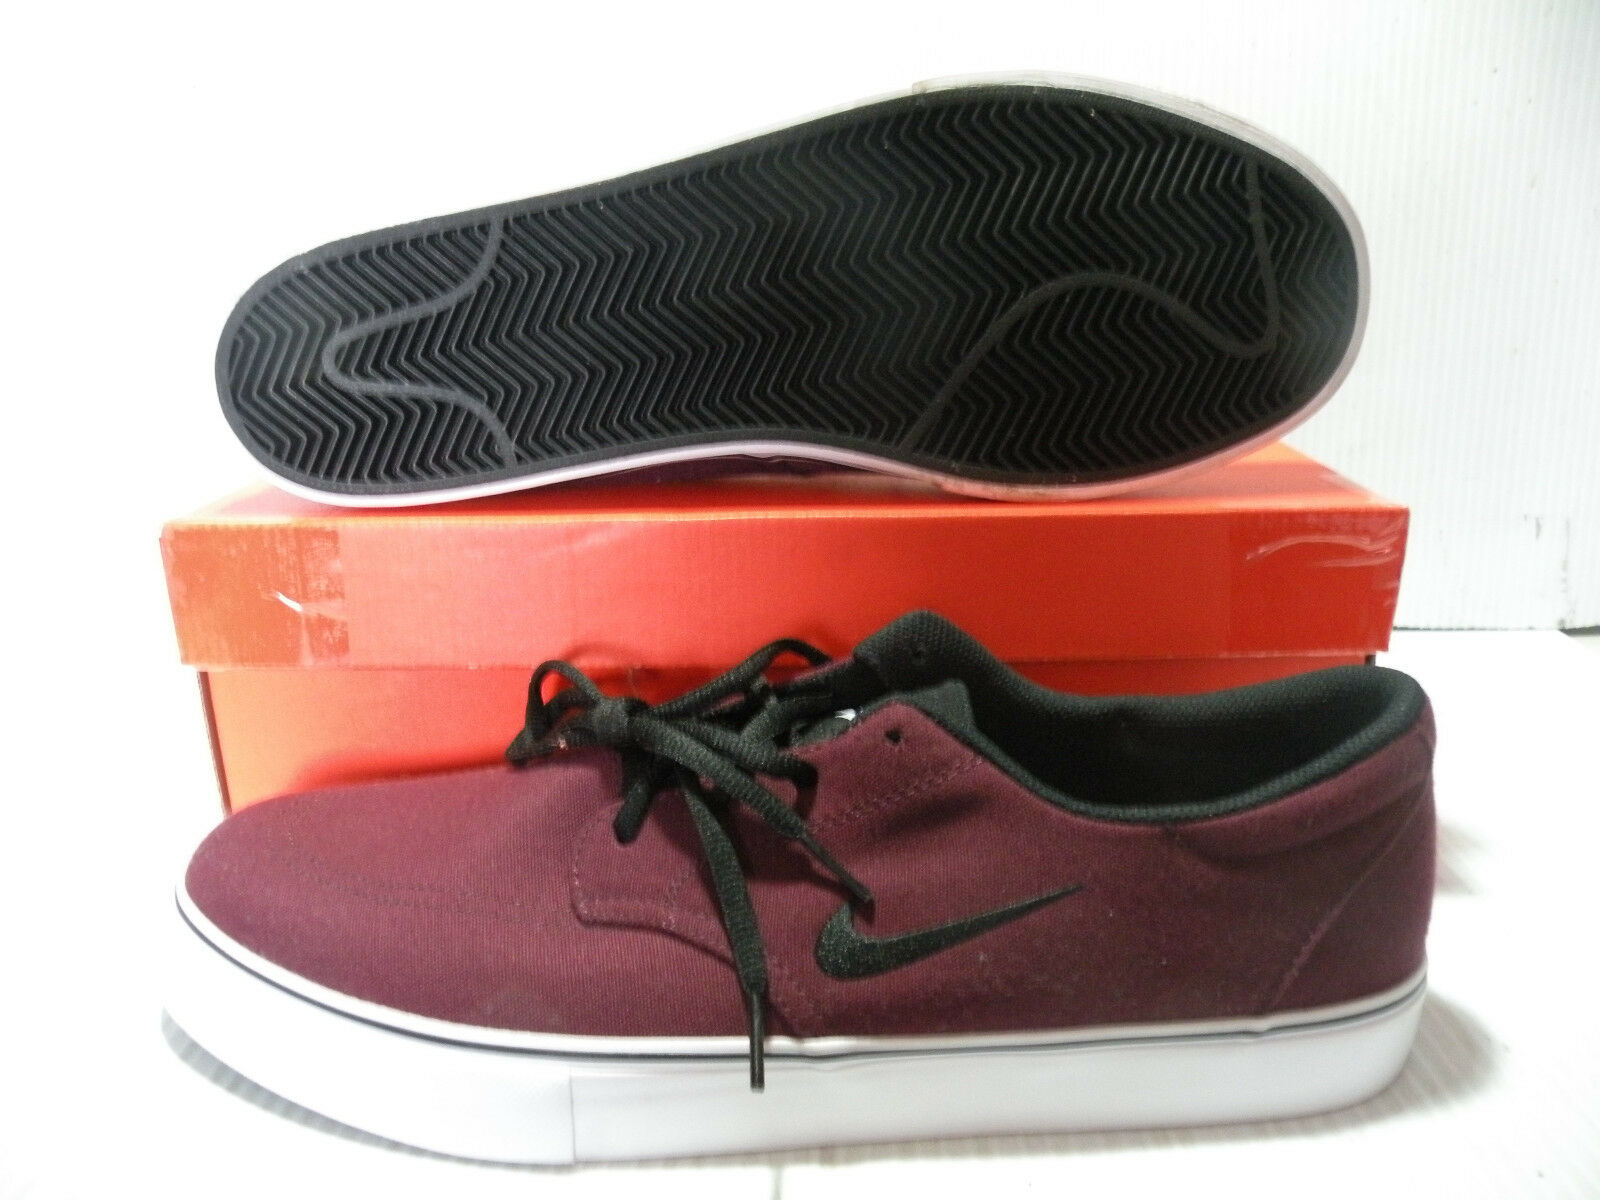 Taille Sb Des Chaussures Marrons Nike La Faible Toile E9YDH2WI